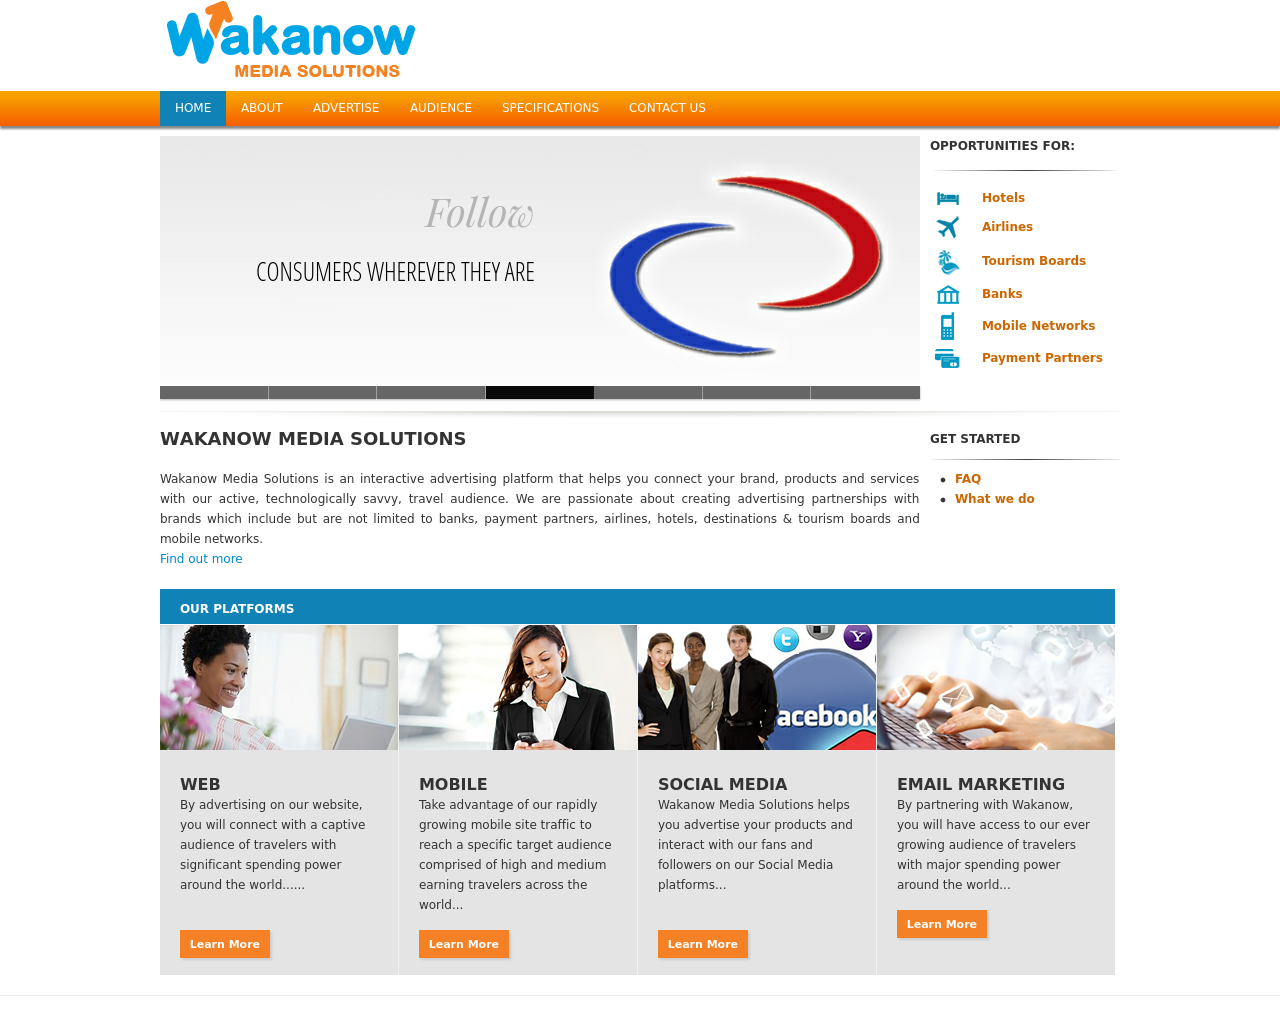 Wakanow-Media-Solutions-Advertising-Reviews-Pricing